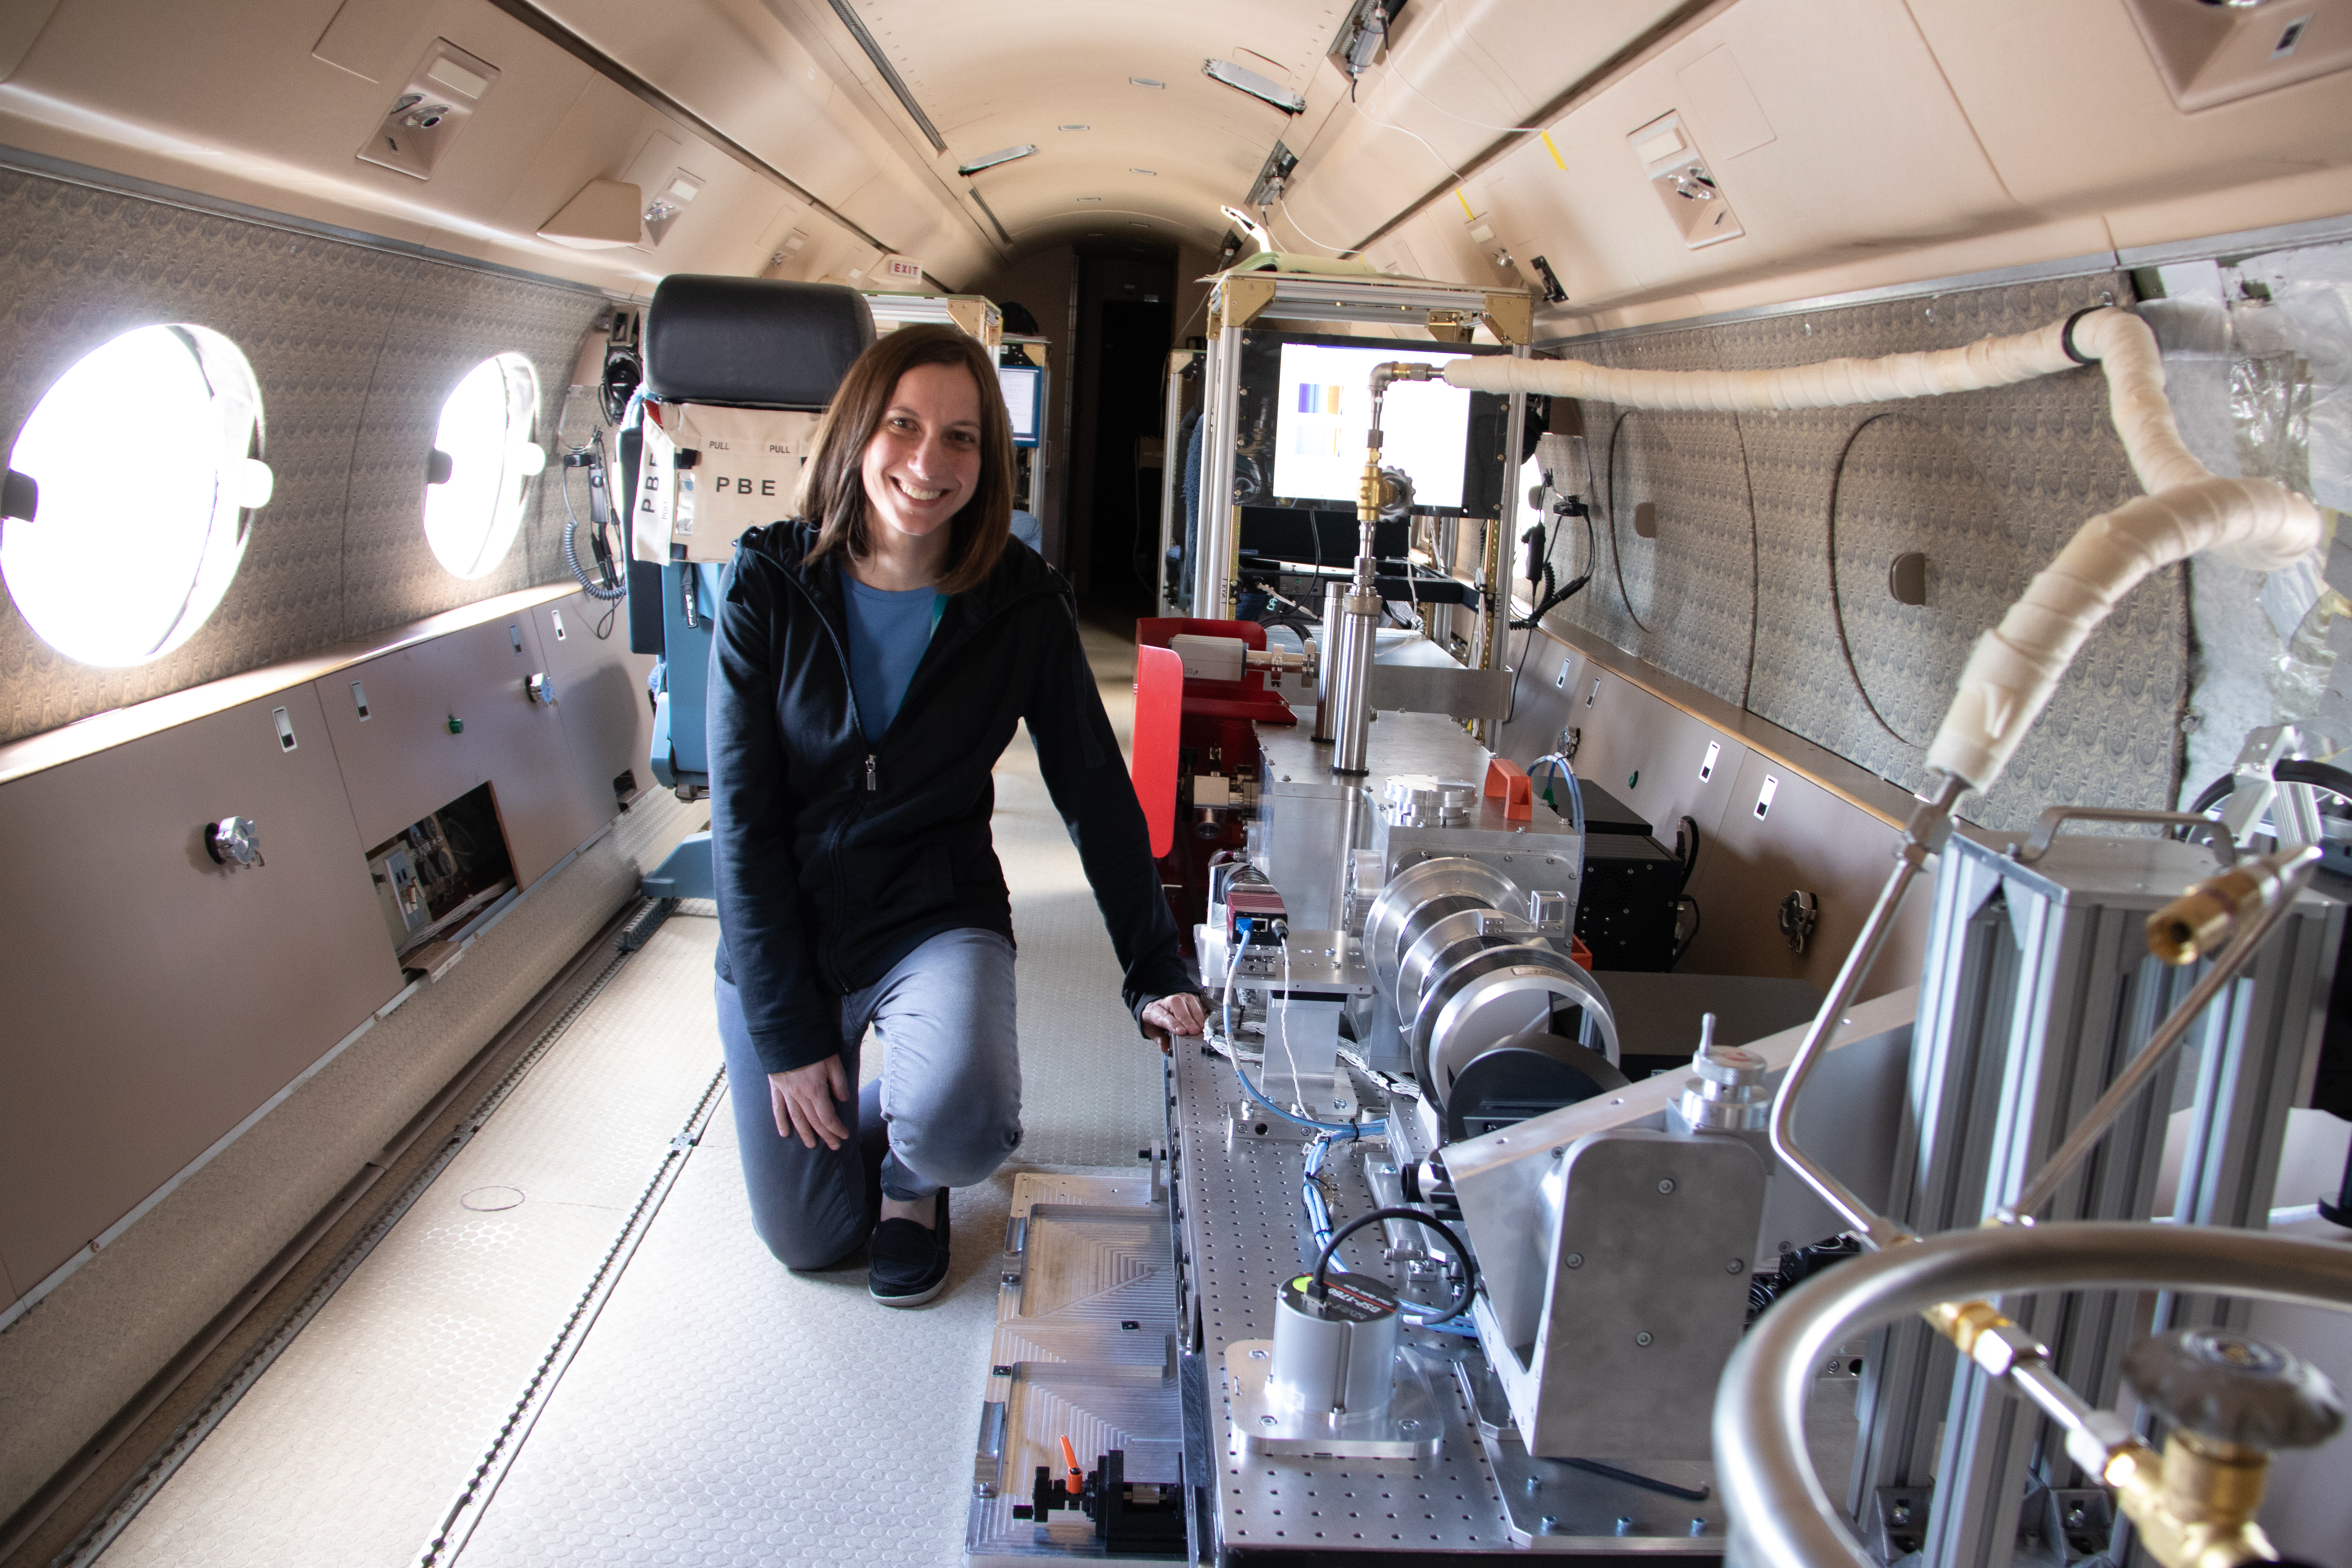 Instrument scientist Jenna Samra kneels next to the Airborne InfraRed Spectrometer (AIR-Spec)